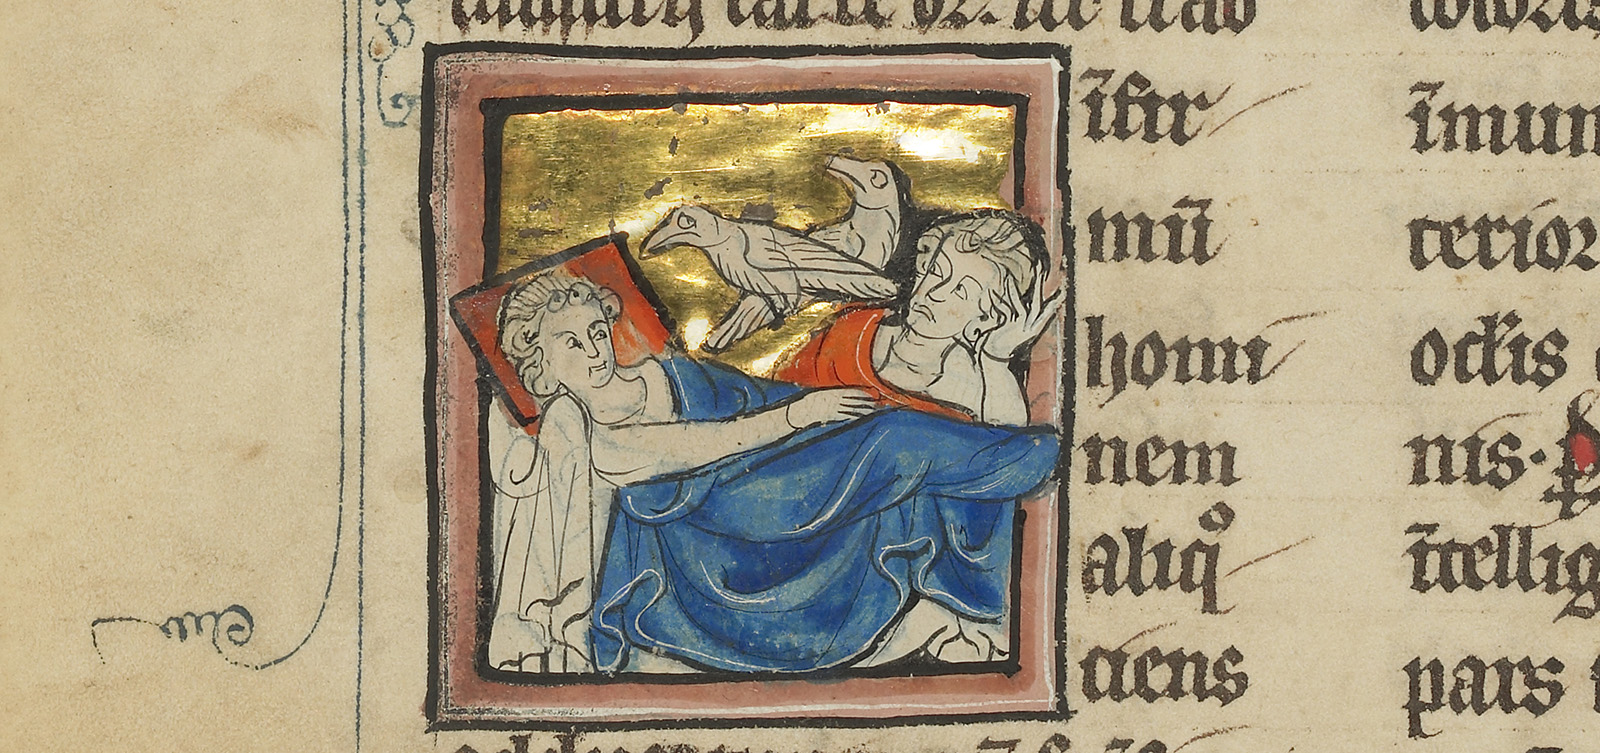 A miniature that combines both versions of the caladrius story into one scene: a caladrius looks towards one patient, healing him, while another caladrius turns his head away from a distraught patient about to die.